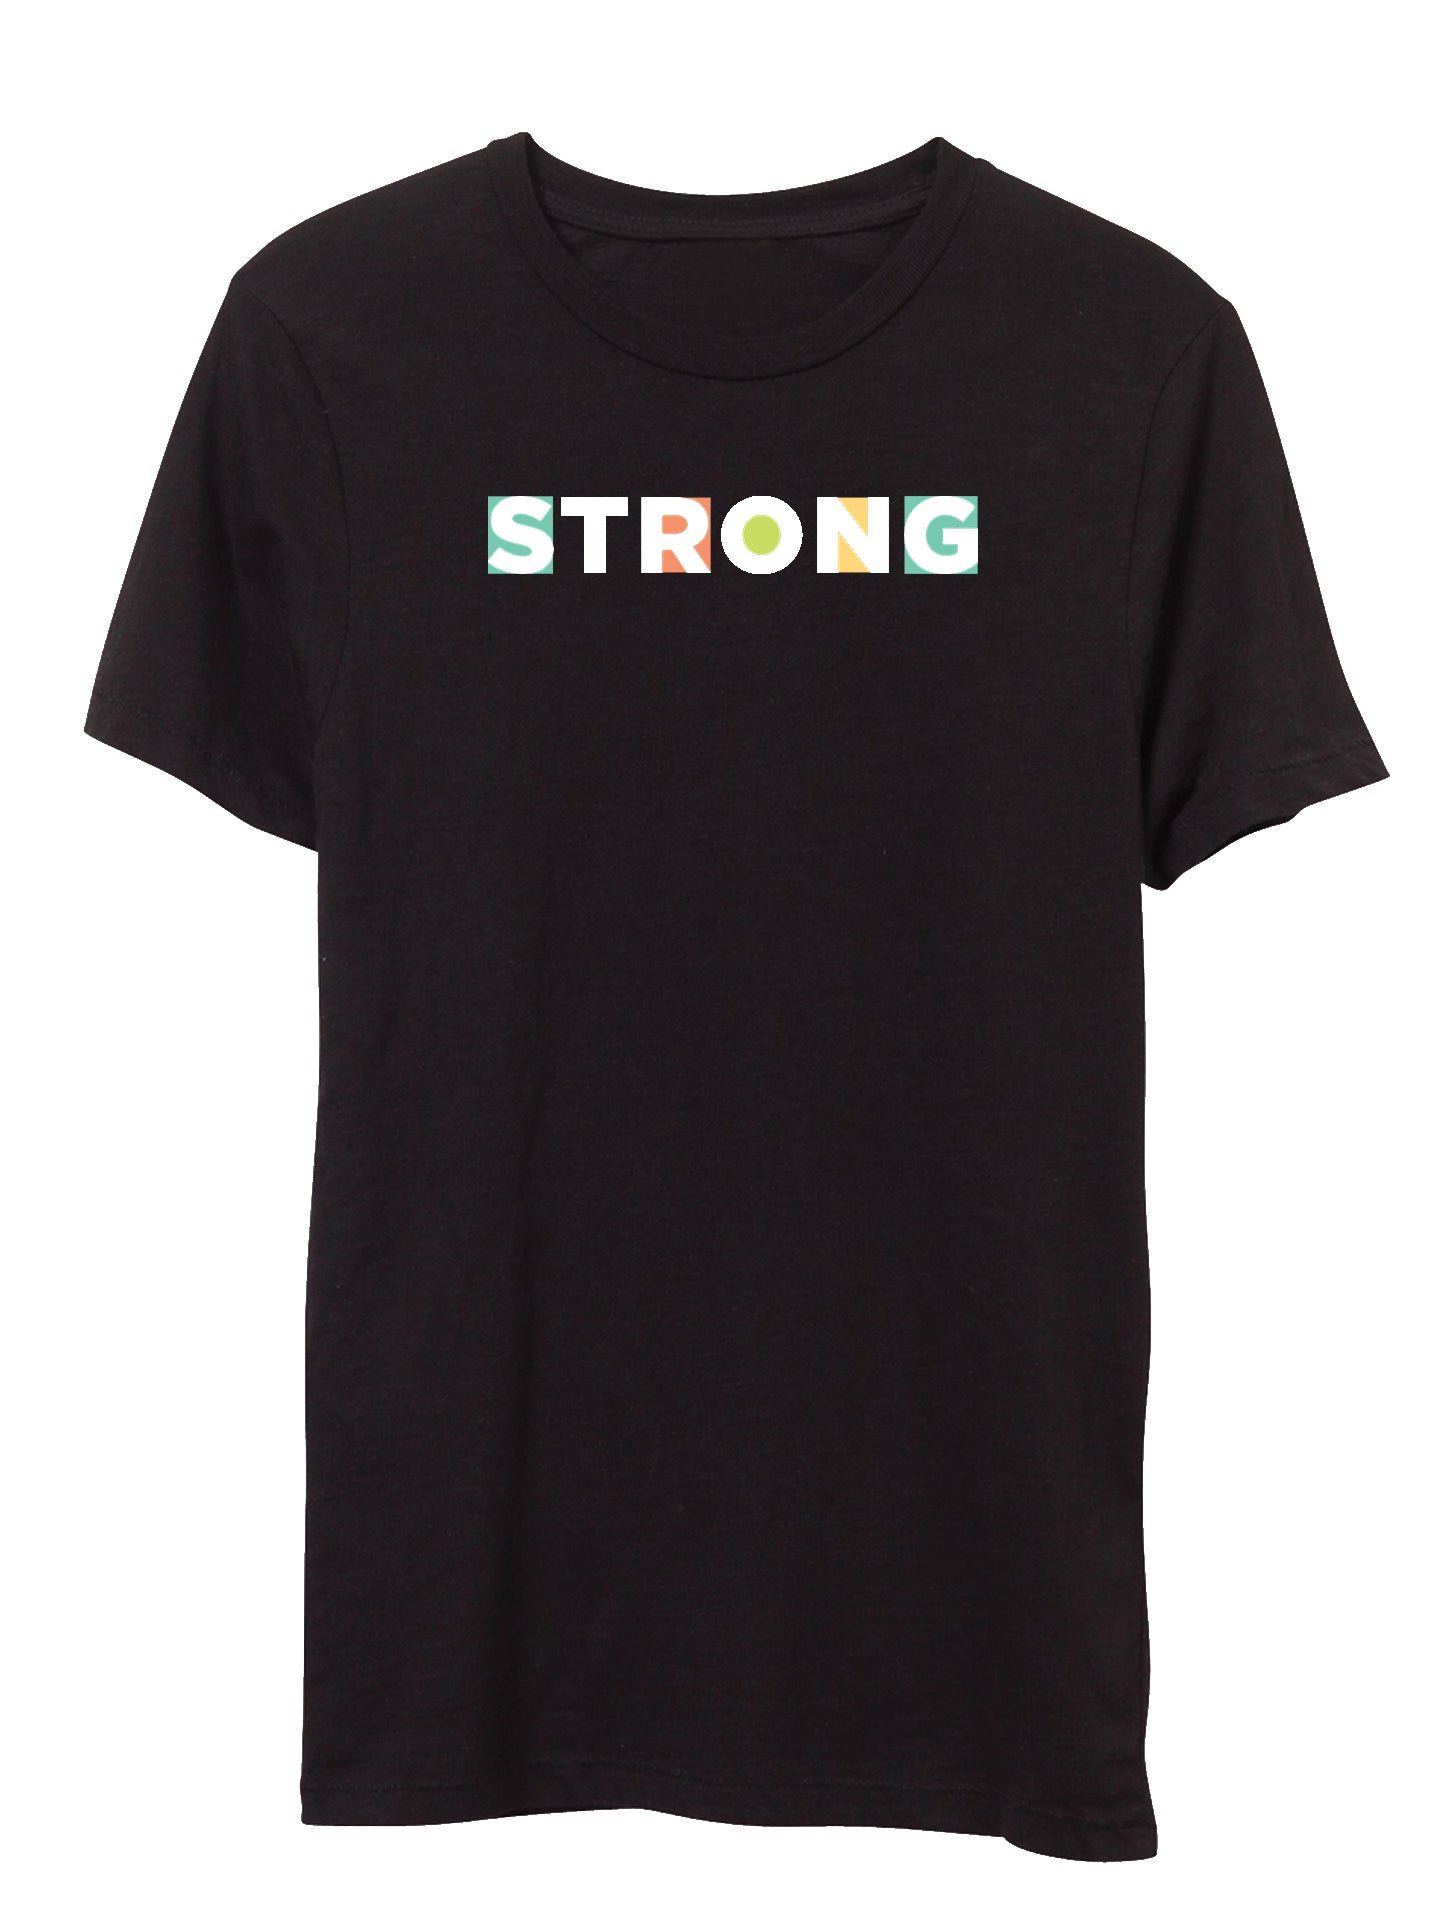 The Power of Words - Men's Tee - STRONG